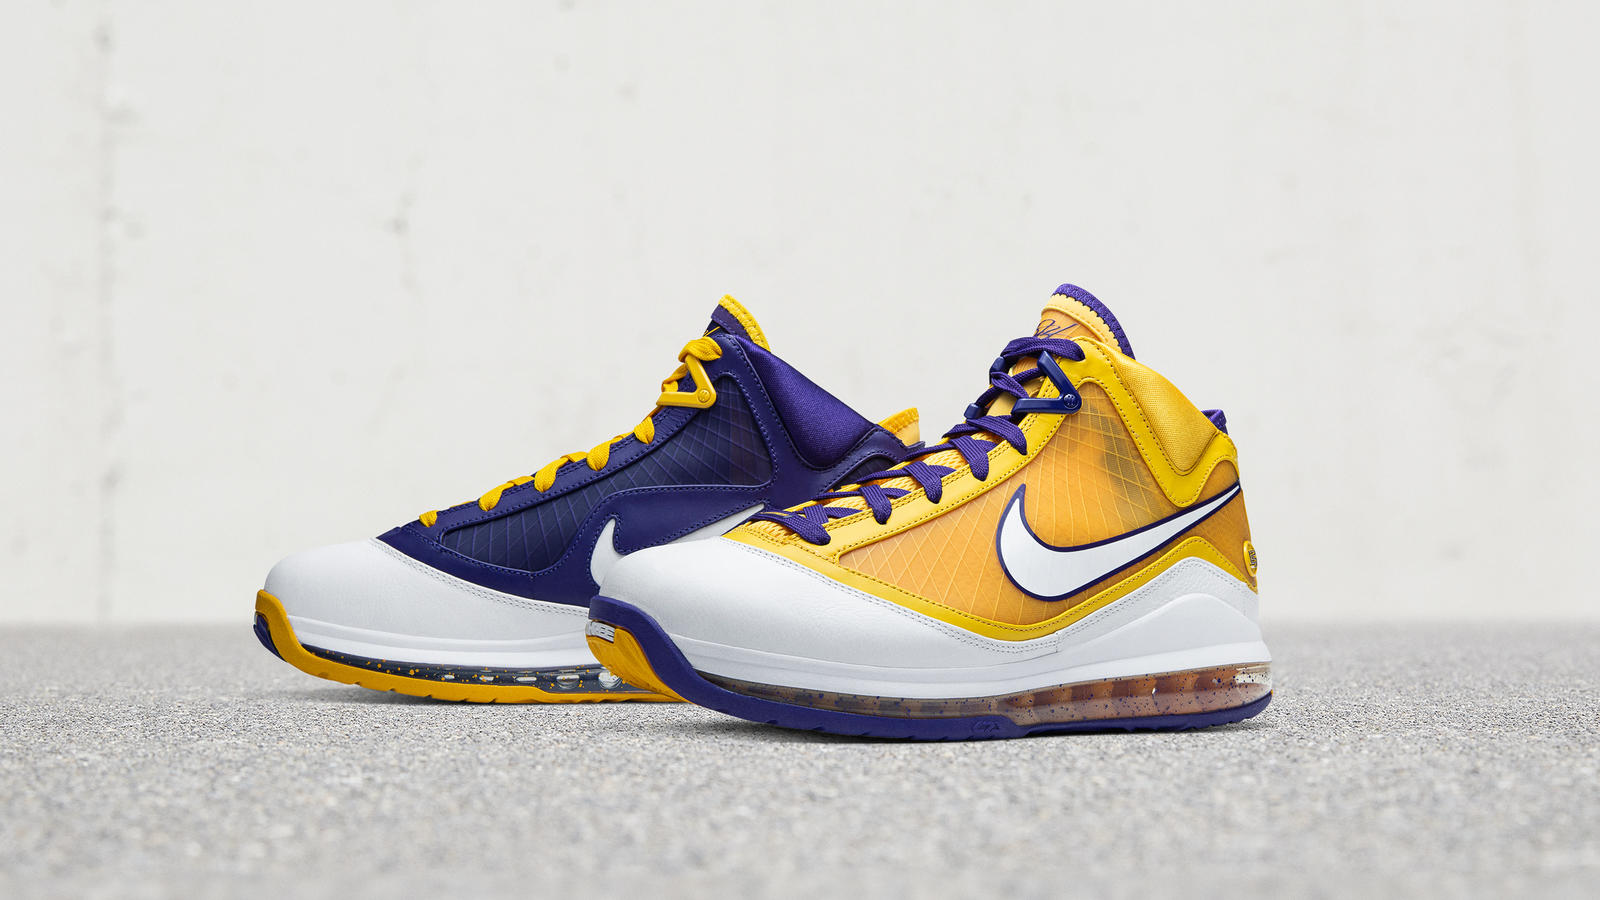 Nike LEBRON 7 Media Day 4